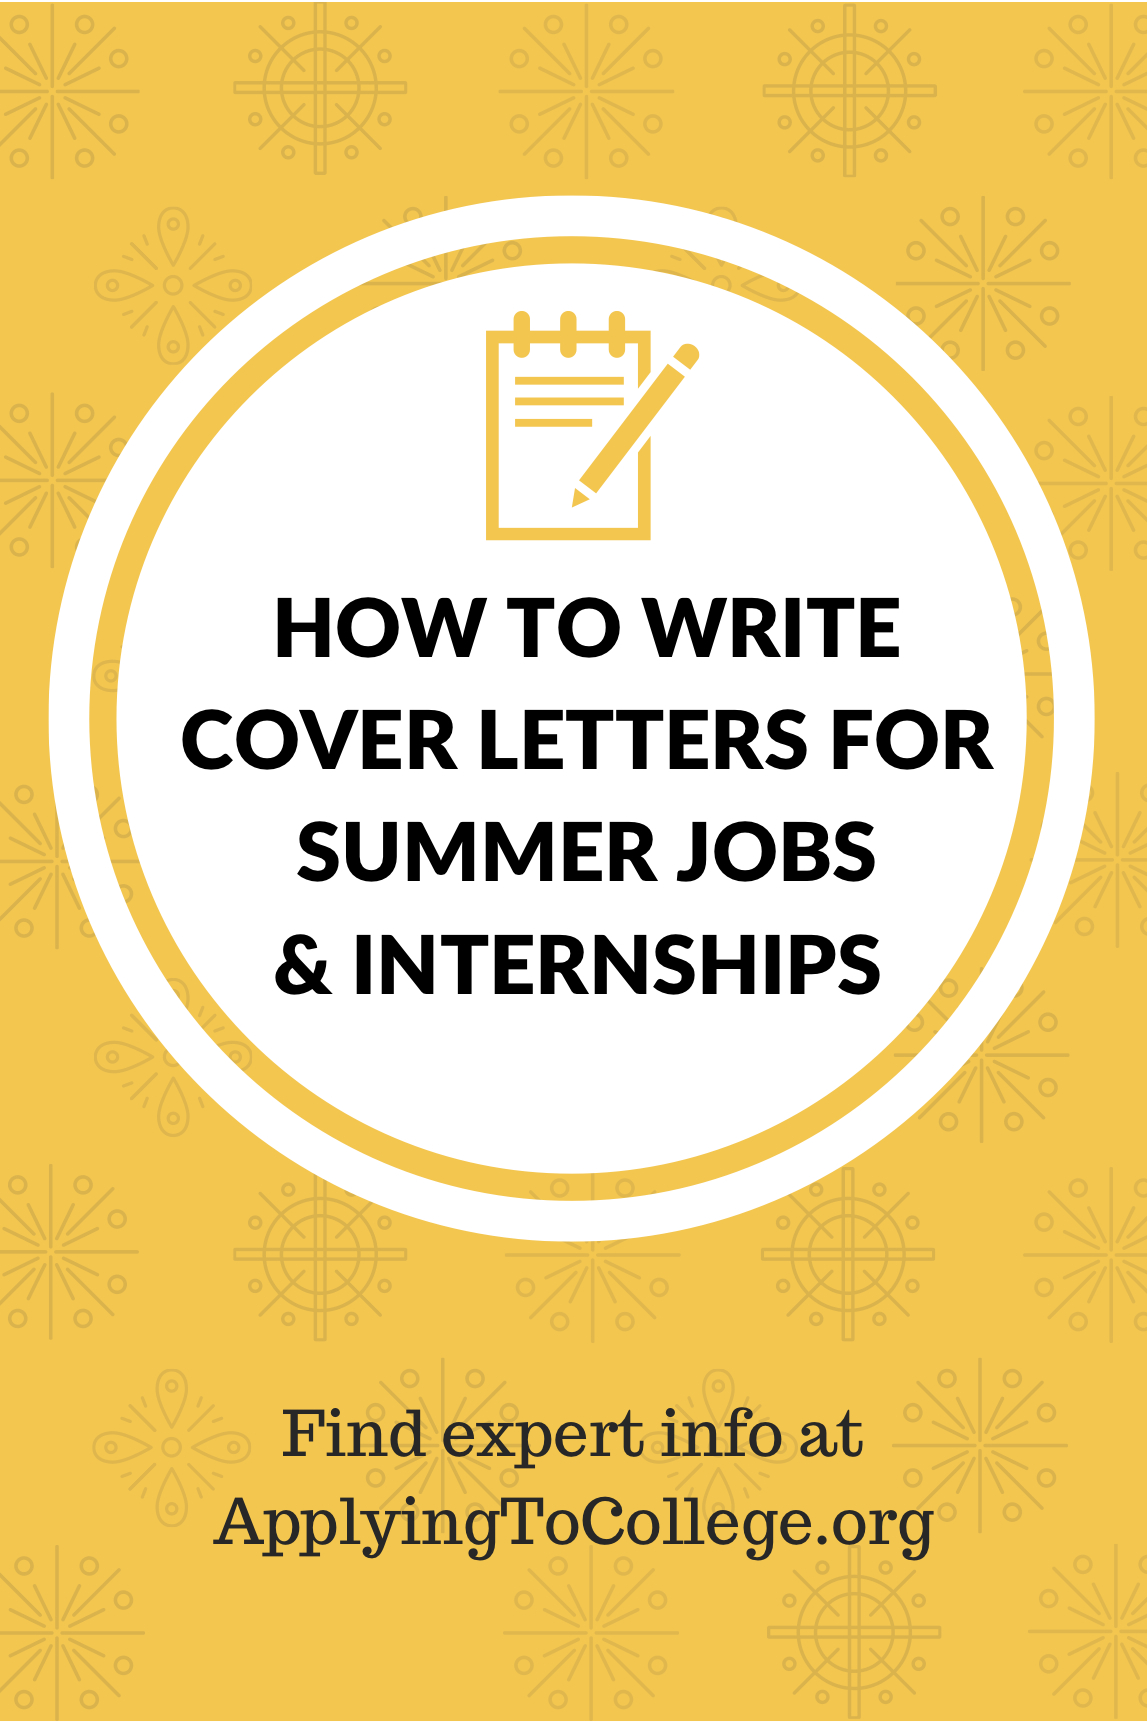 Cover Letters for Summer Jobs and Internship Applications